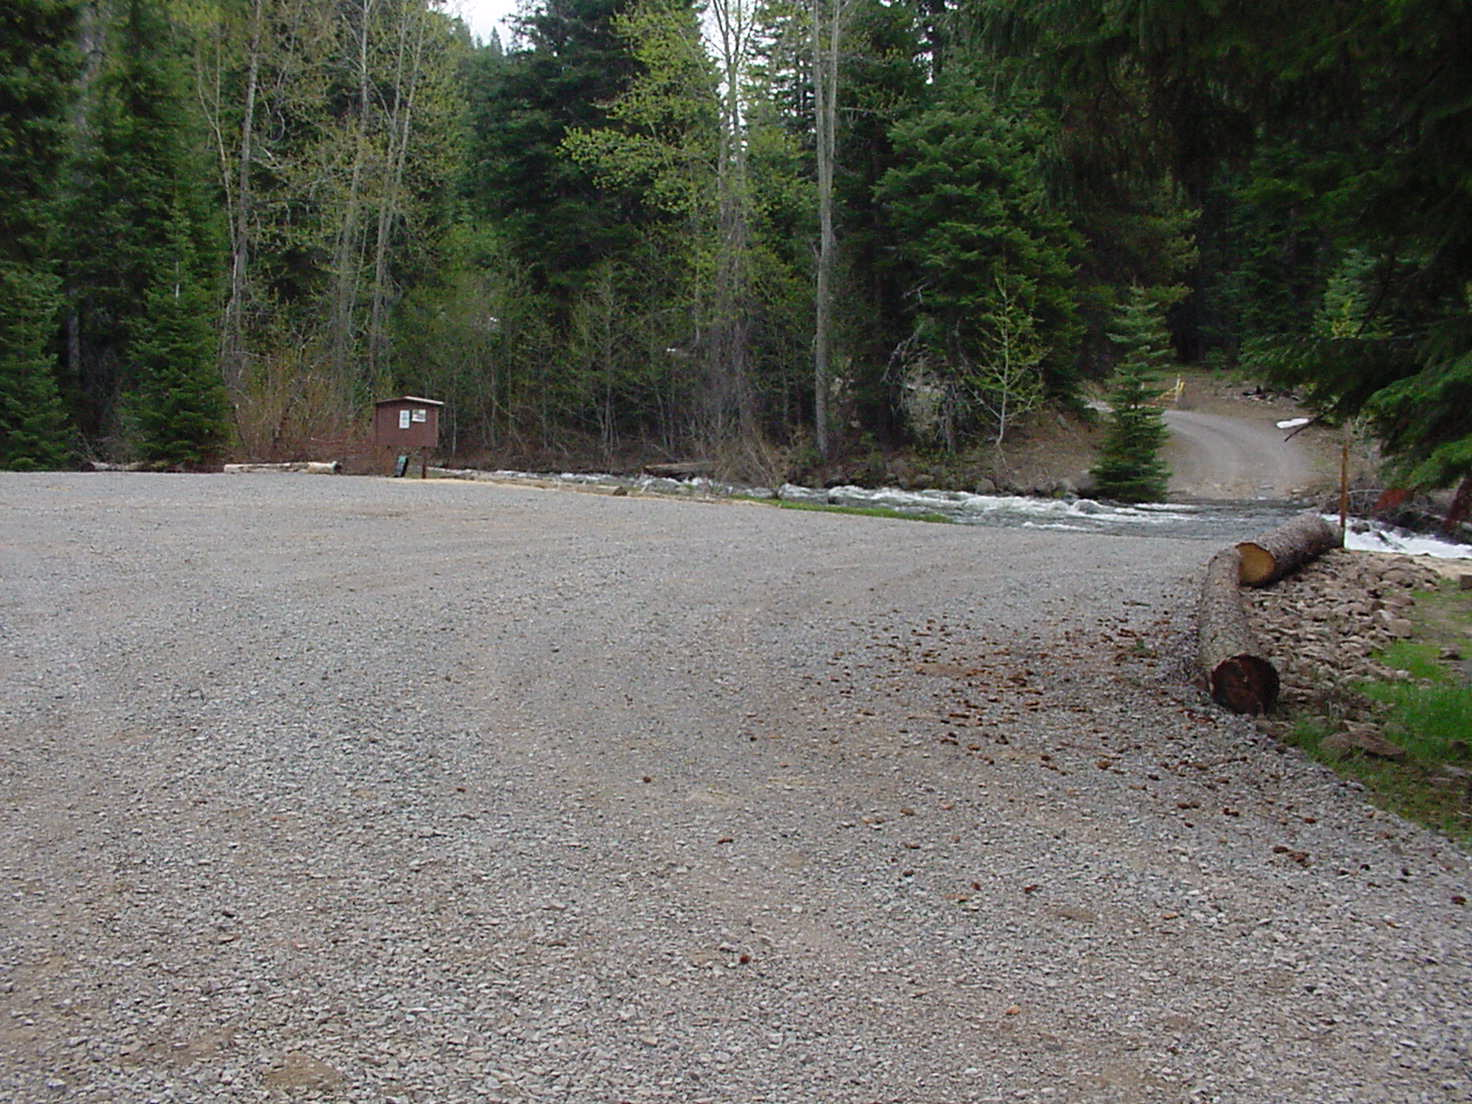 Large gravel trailhead parking area with pine trees